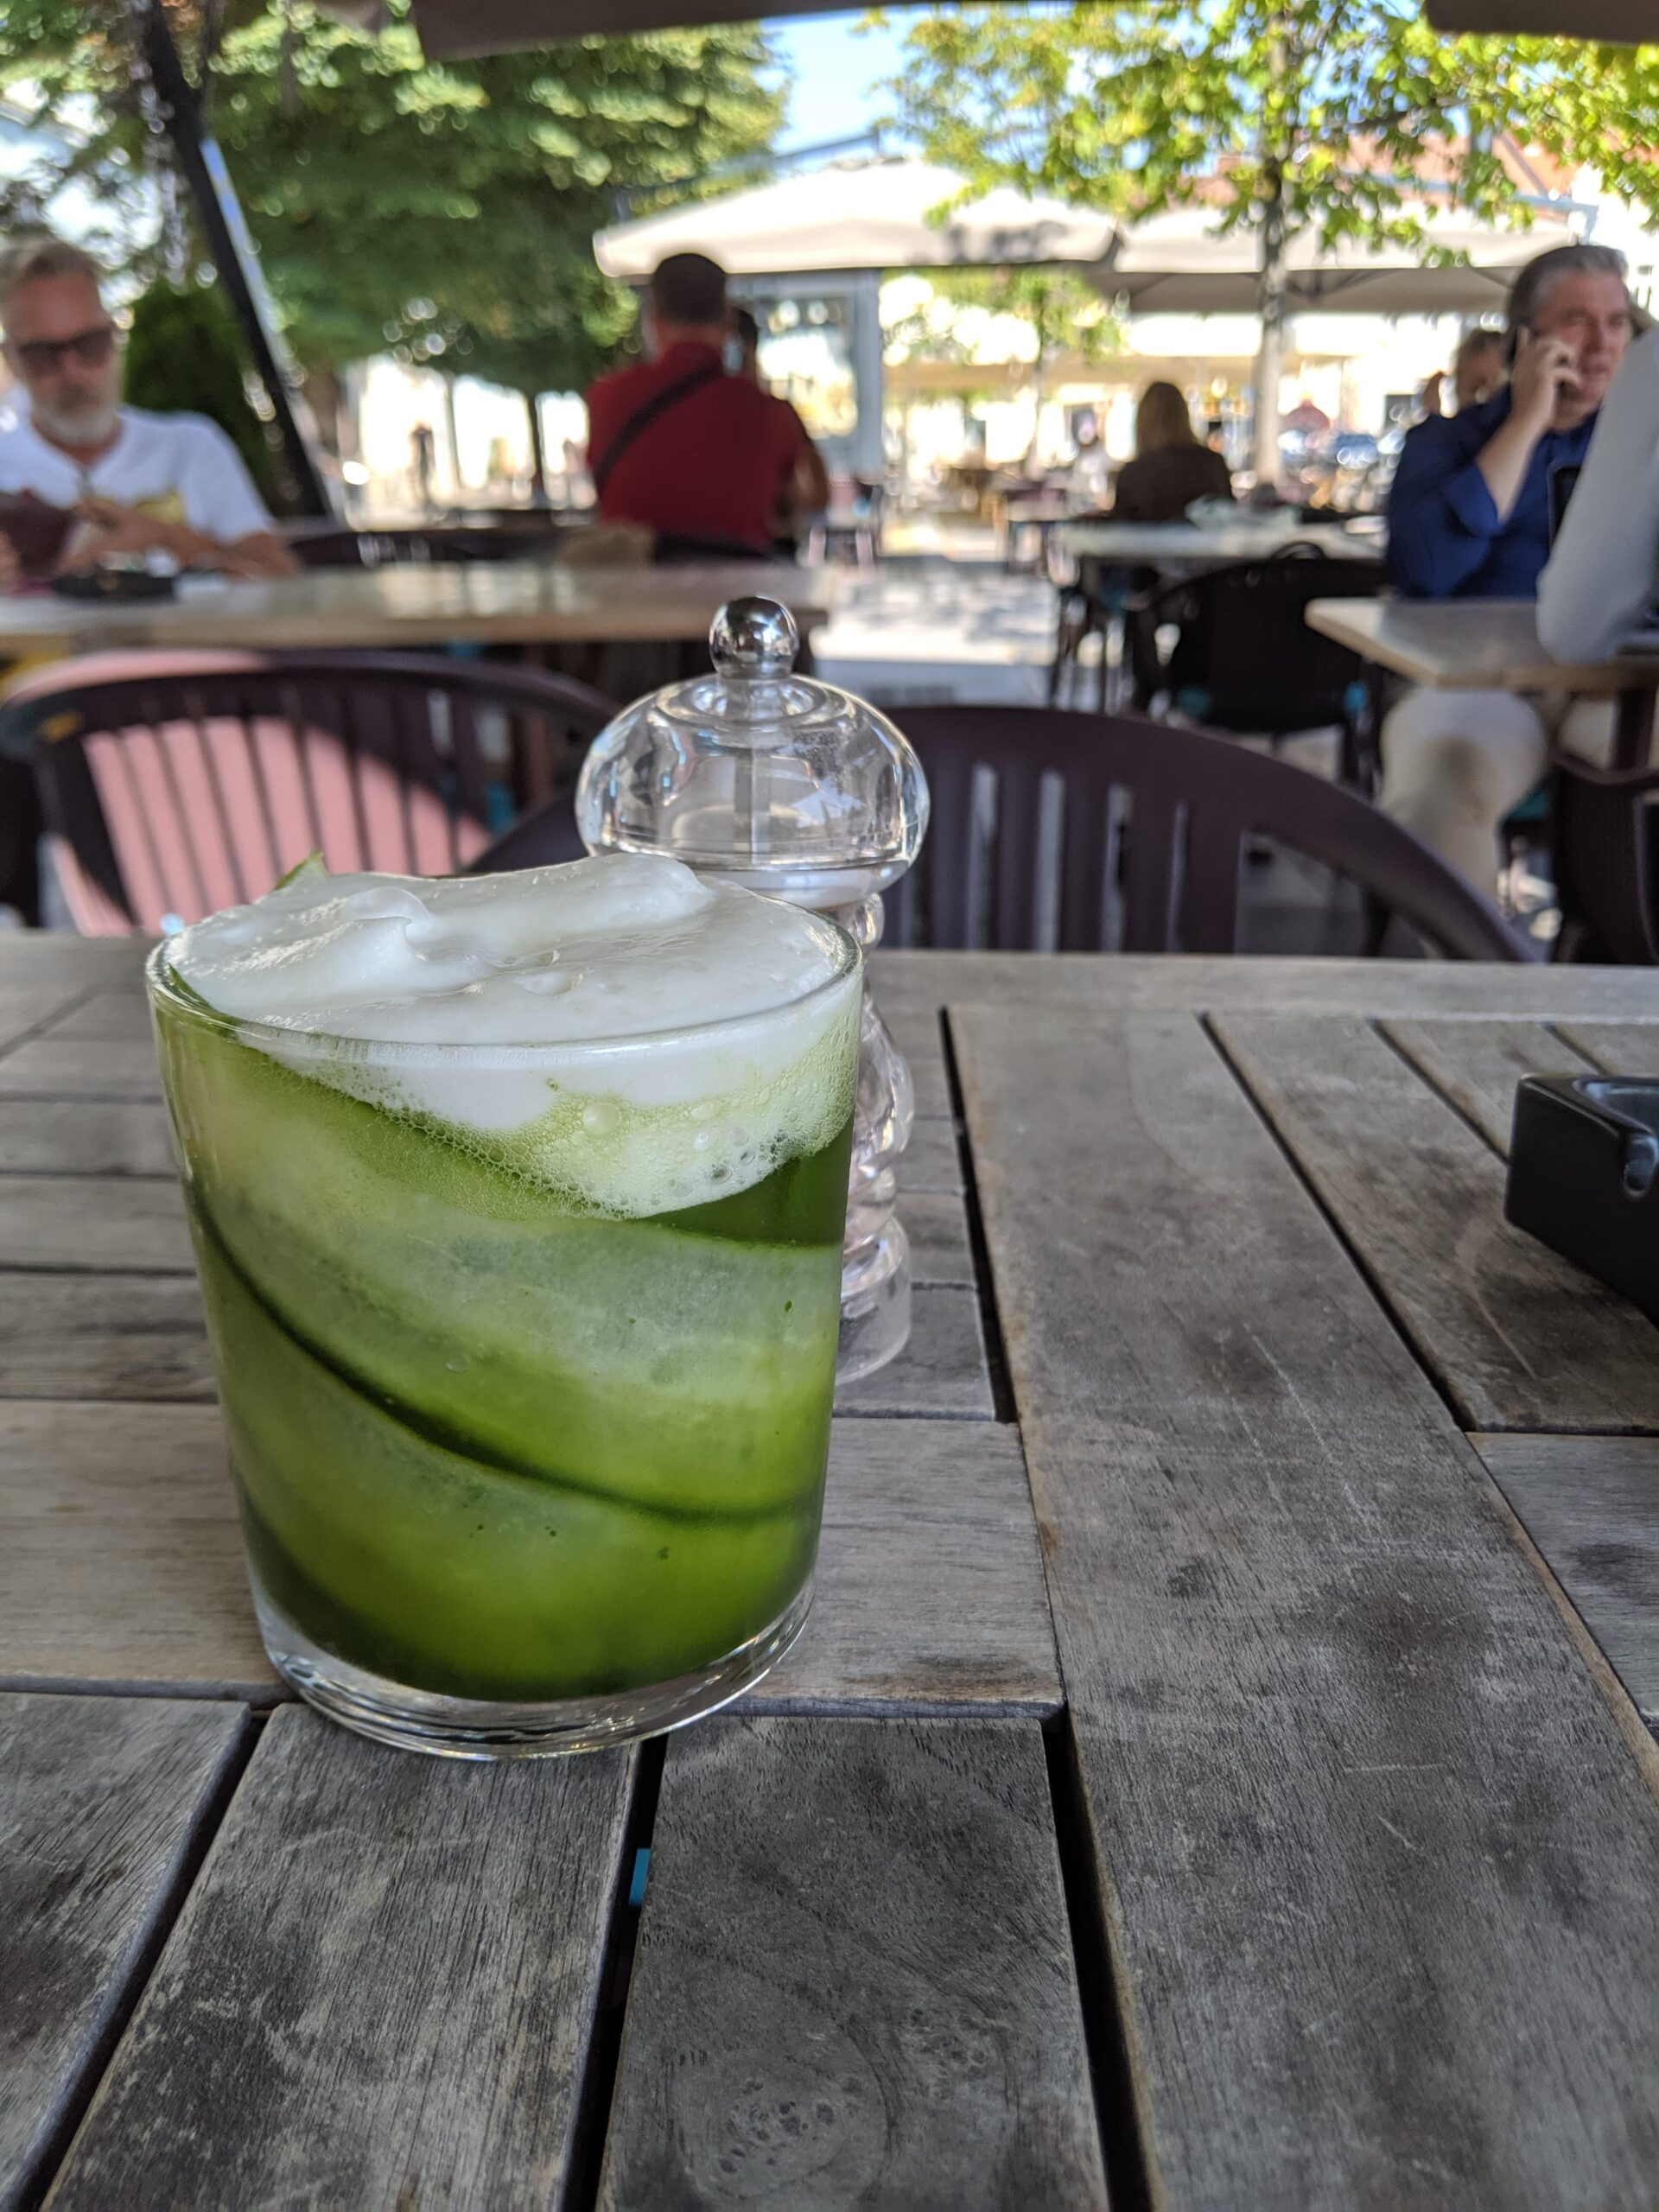 Green smoothie in romania.